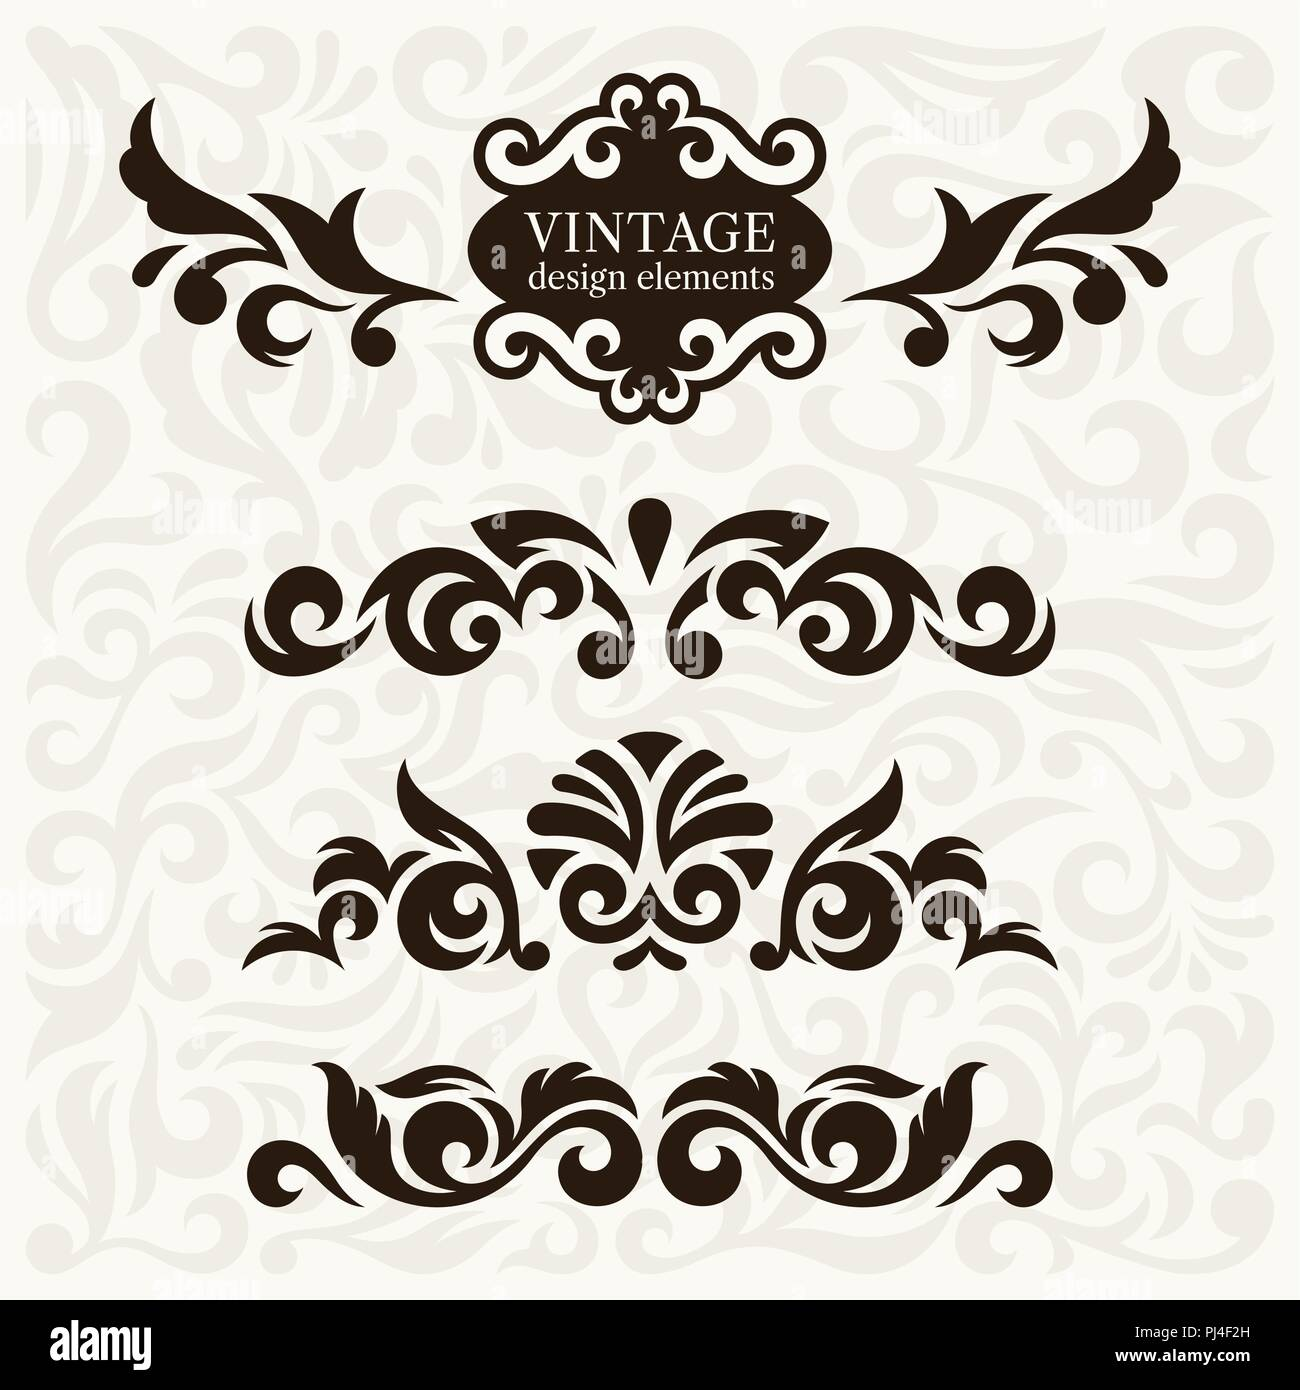 Vintage design elements and page decoration. Use for decorating greeting cards or invitations - Stock Vector